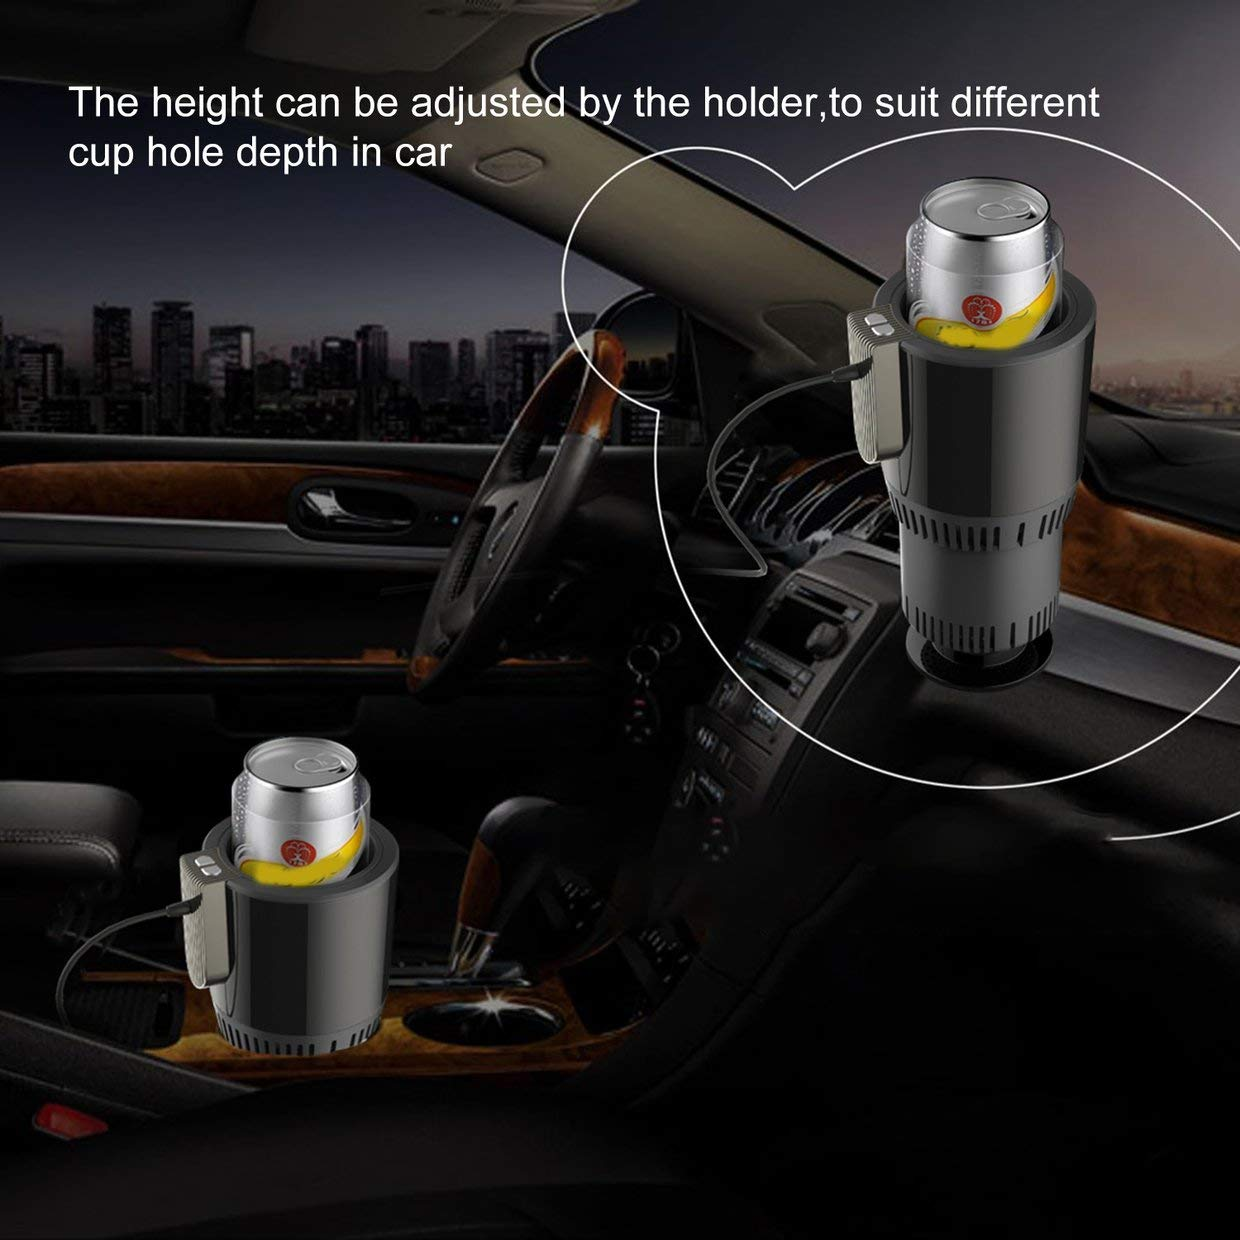 MXECO Auto Car Heating Cooling Can Cup Holder Drink Can Portable Electric Vehicle Heater 12V Mini Fridge Coffee Cooler Warmer